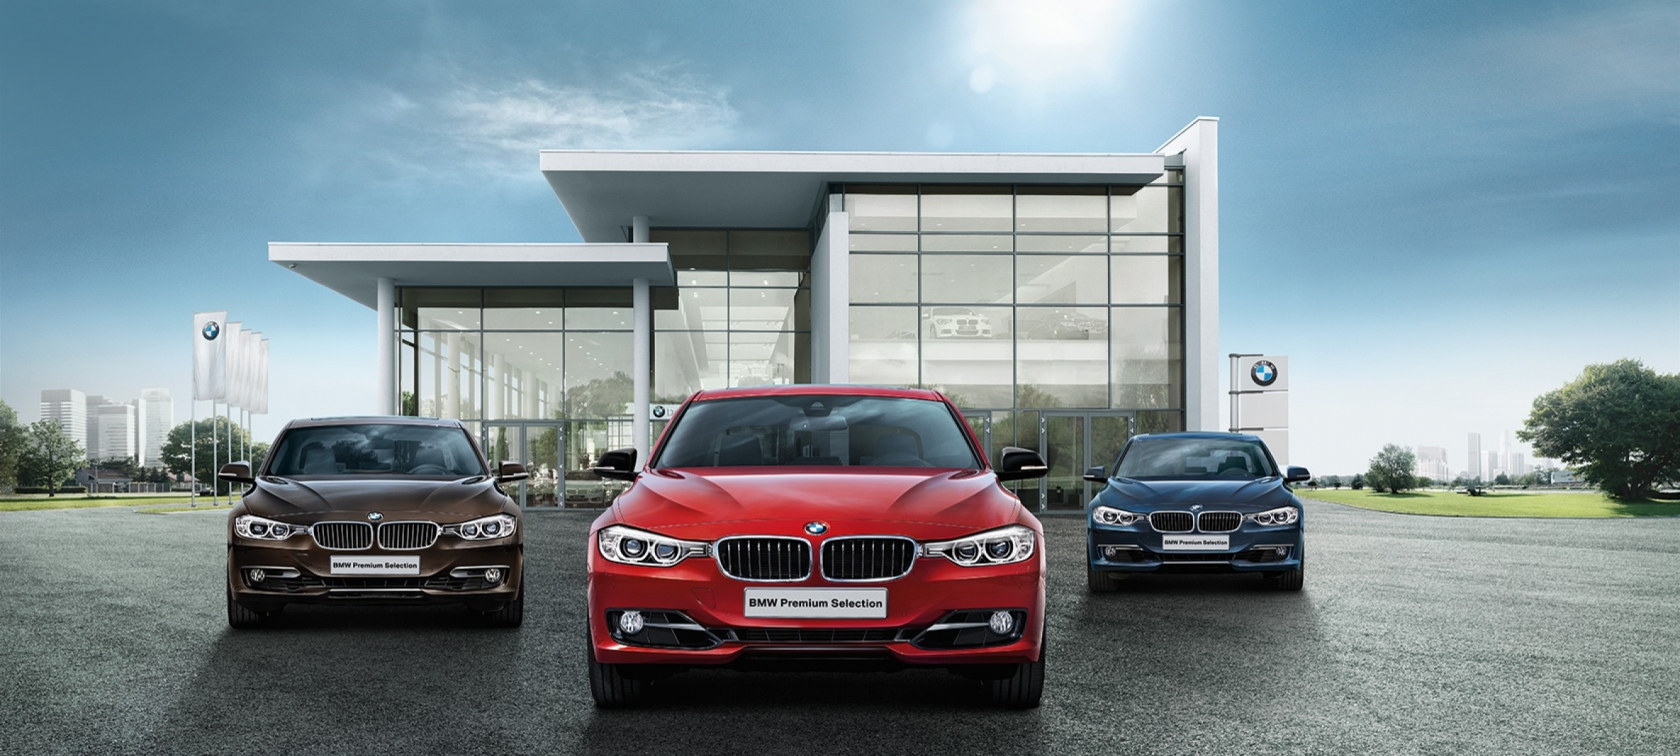 Upgrading BMW Dealership to Teams Telephony